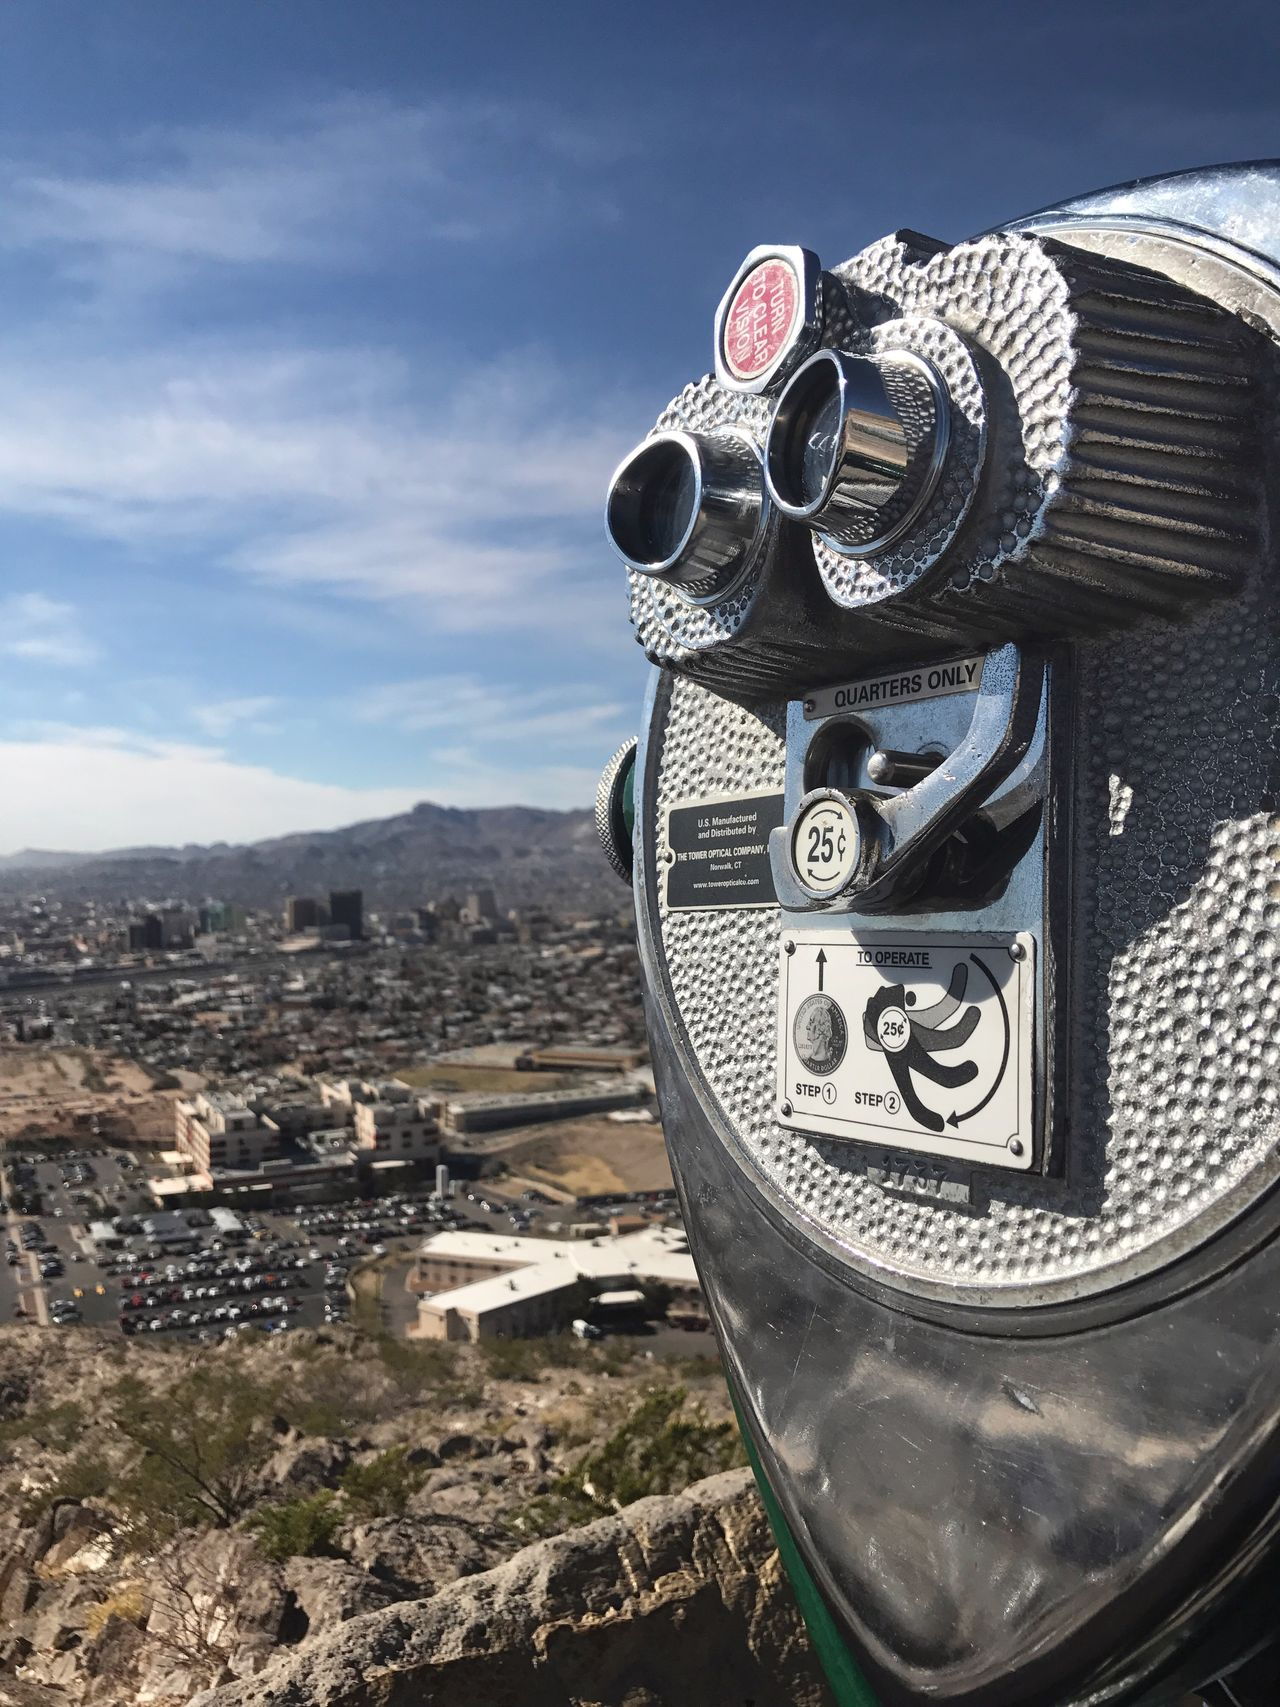 Building Exterior Day Coin-operated Binoculars Sky Architecture Built Structure Outdoors No People Close-up Cloud - Sky Mountain Cityscape Nature El Paso Tx El Paso Scenic View Scenic Drive In ELP Scenic Drive City Life City